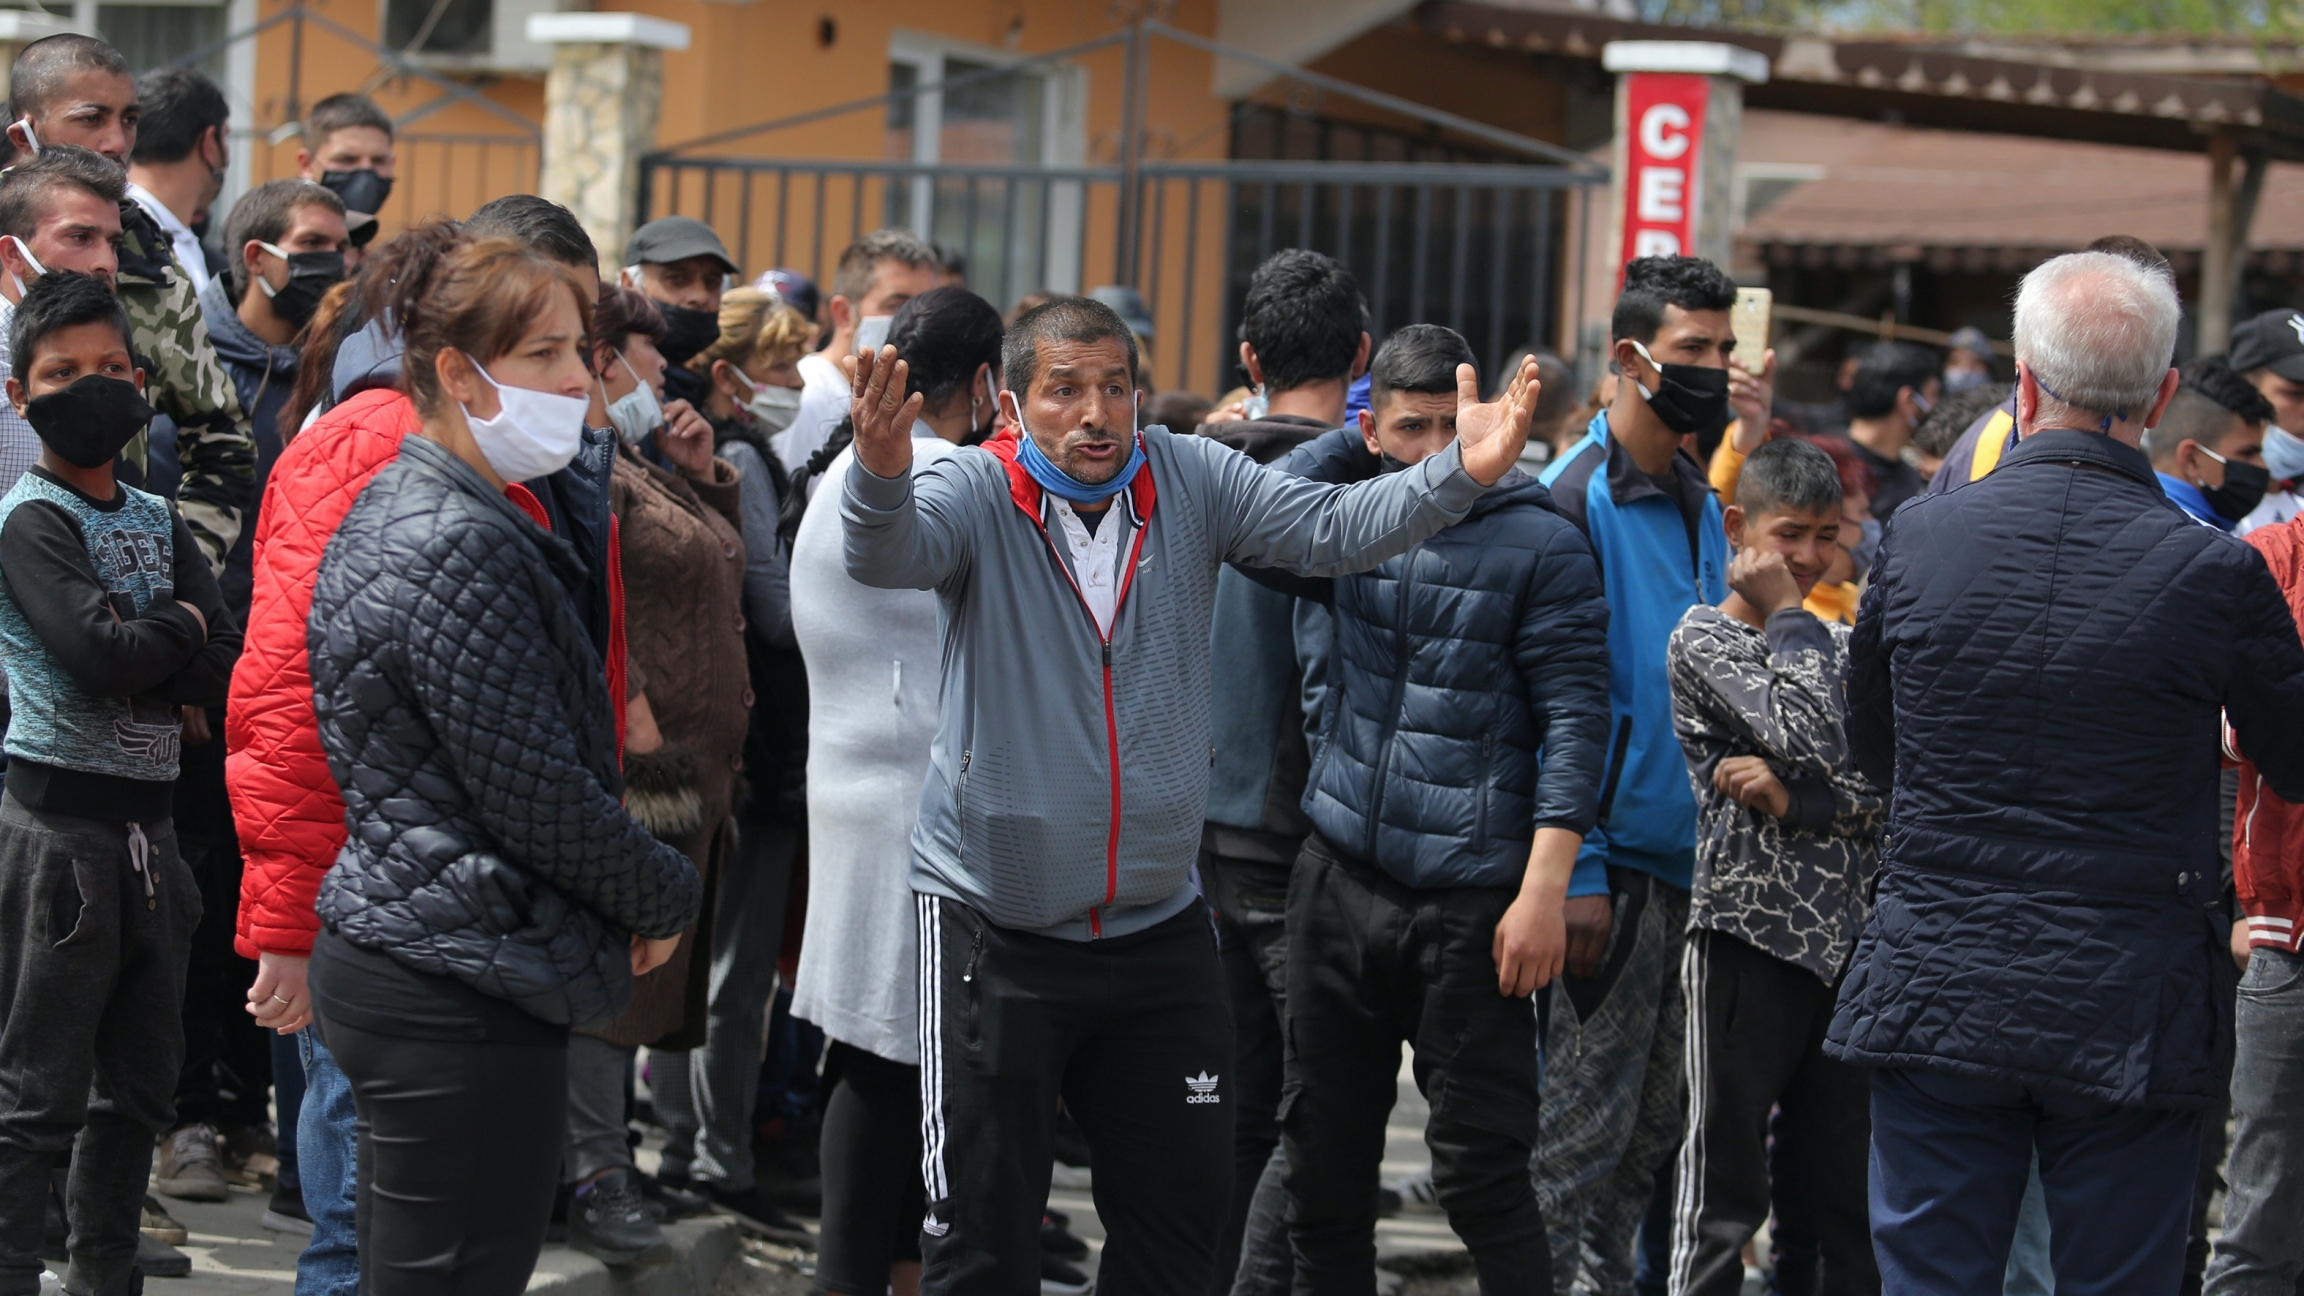 A man reacts with his hand raised amid a large crowd protesting restrictions due to COVID-19.